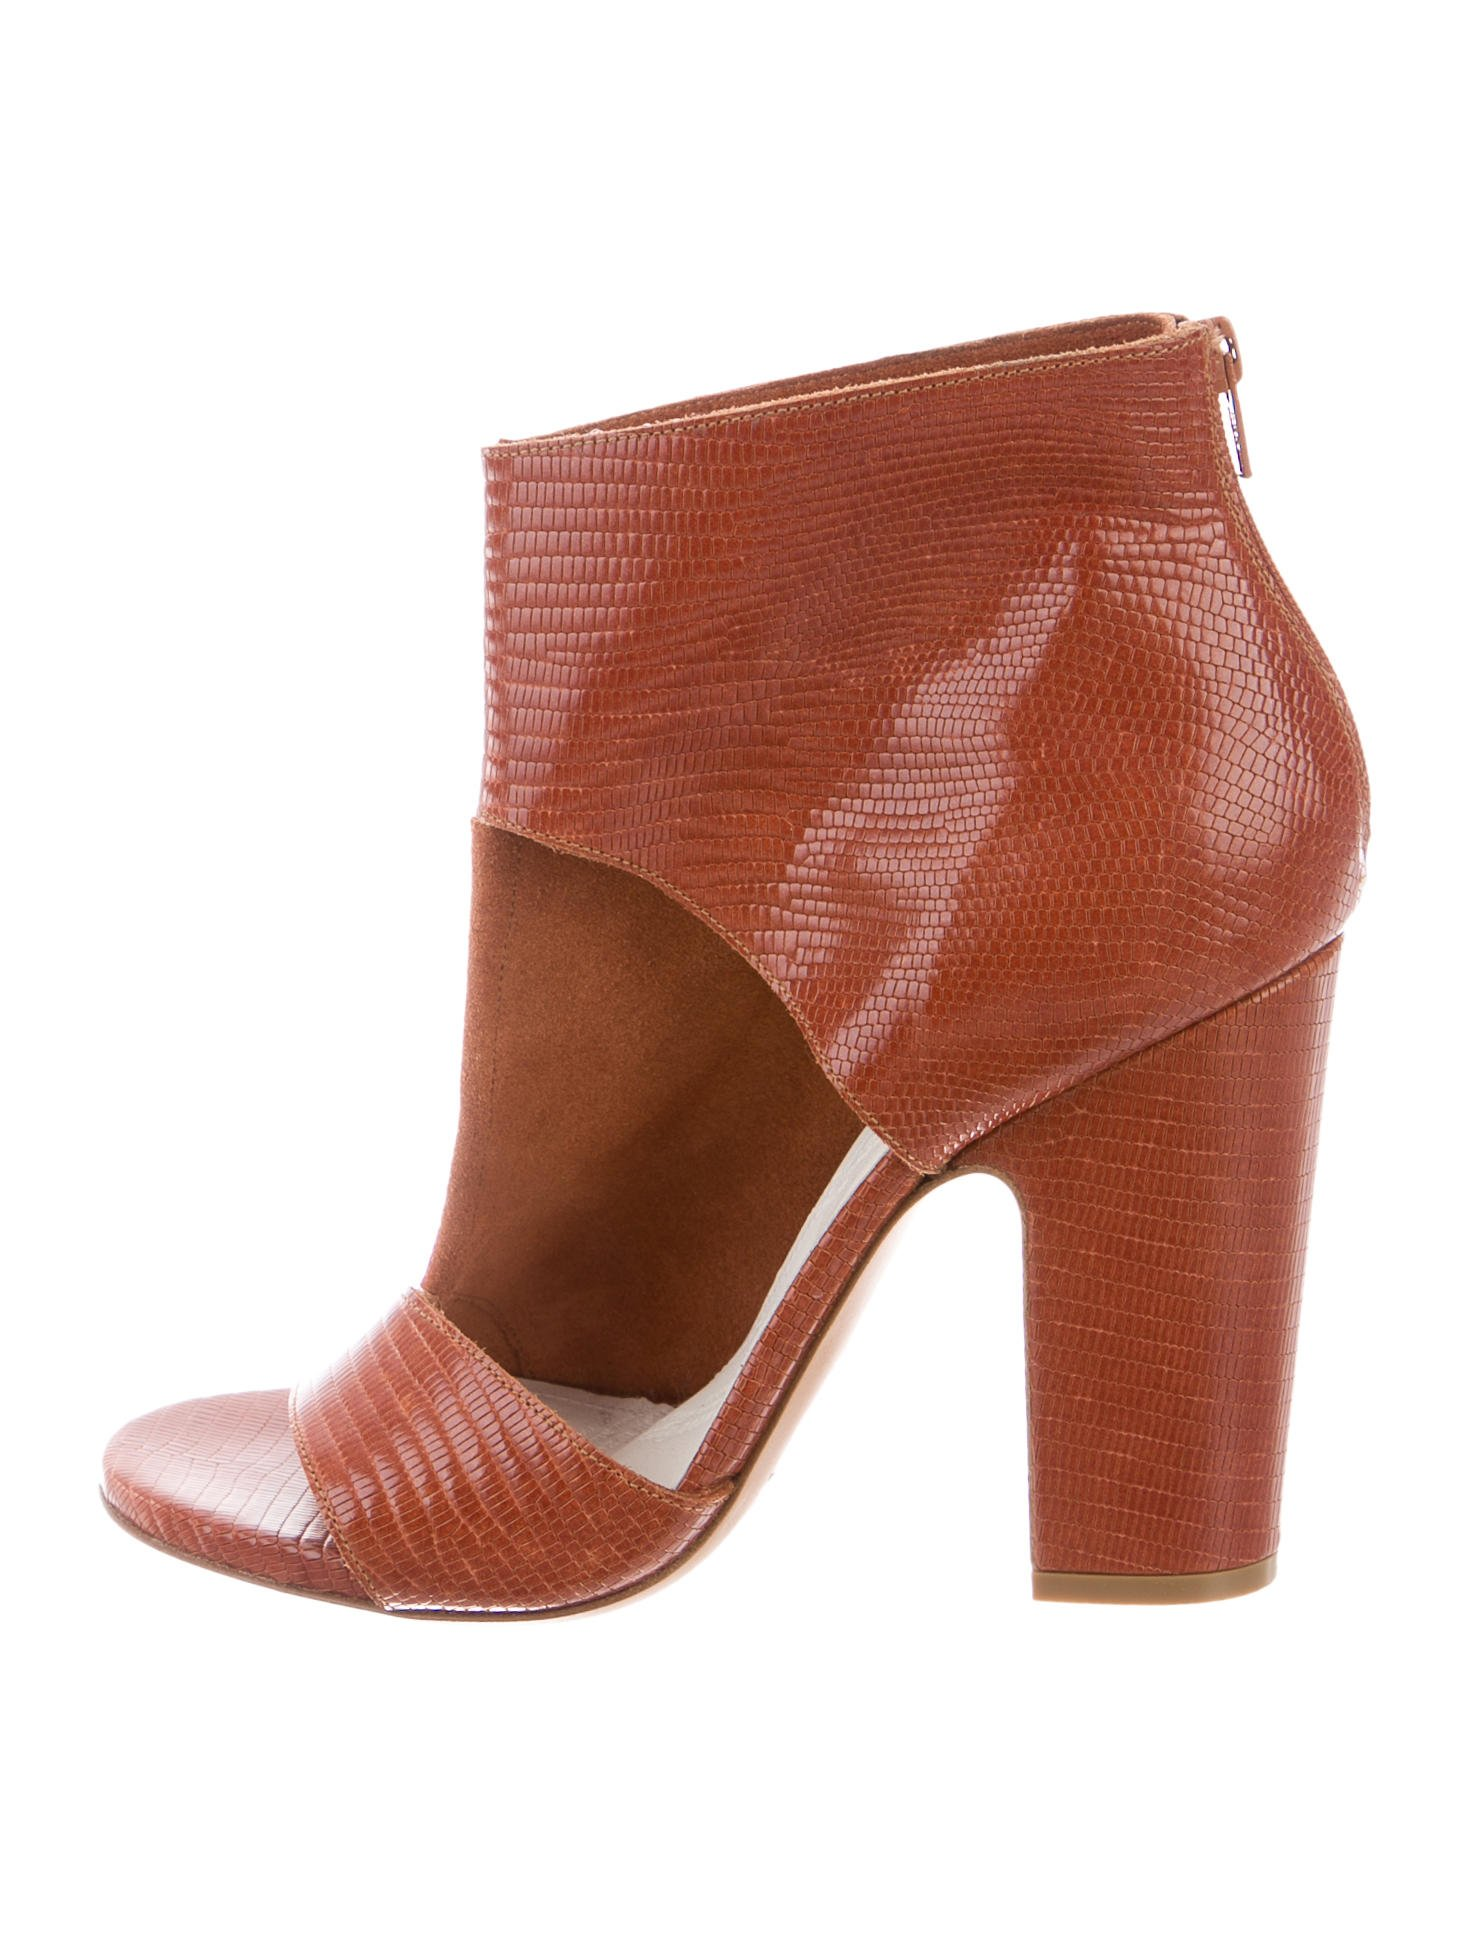 Maison Margiela Embossed Peep-Toe Ankle Boots discount perfect cheap sale footlocker finishline genuine online discount footaction buy cheap the cheapest q7CIRzA